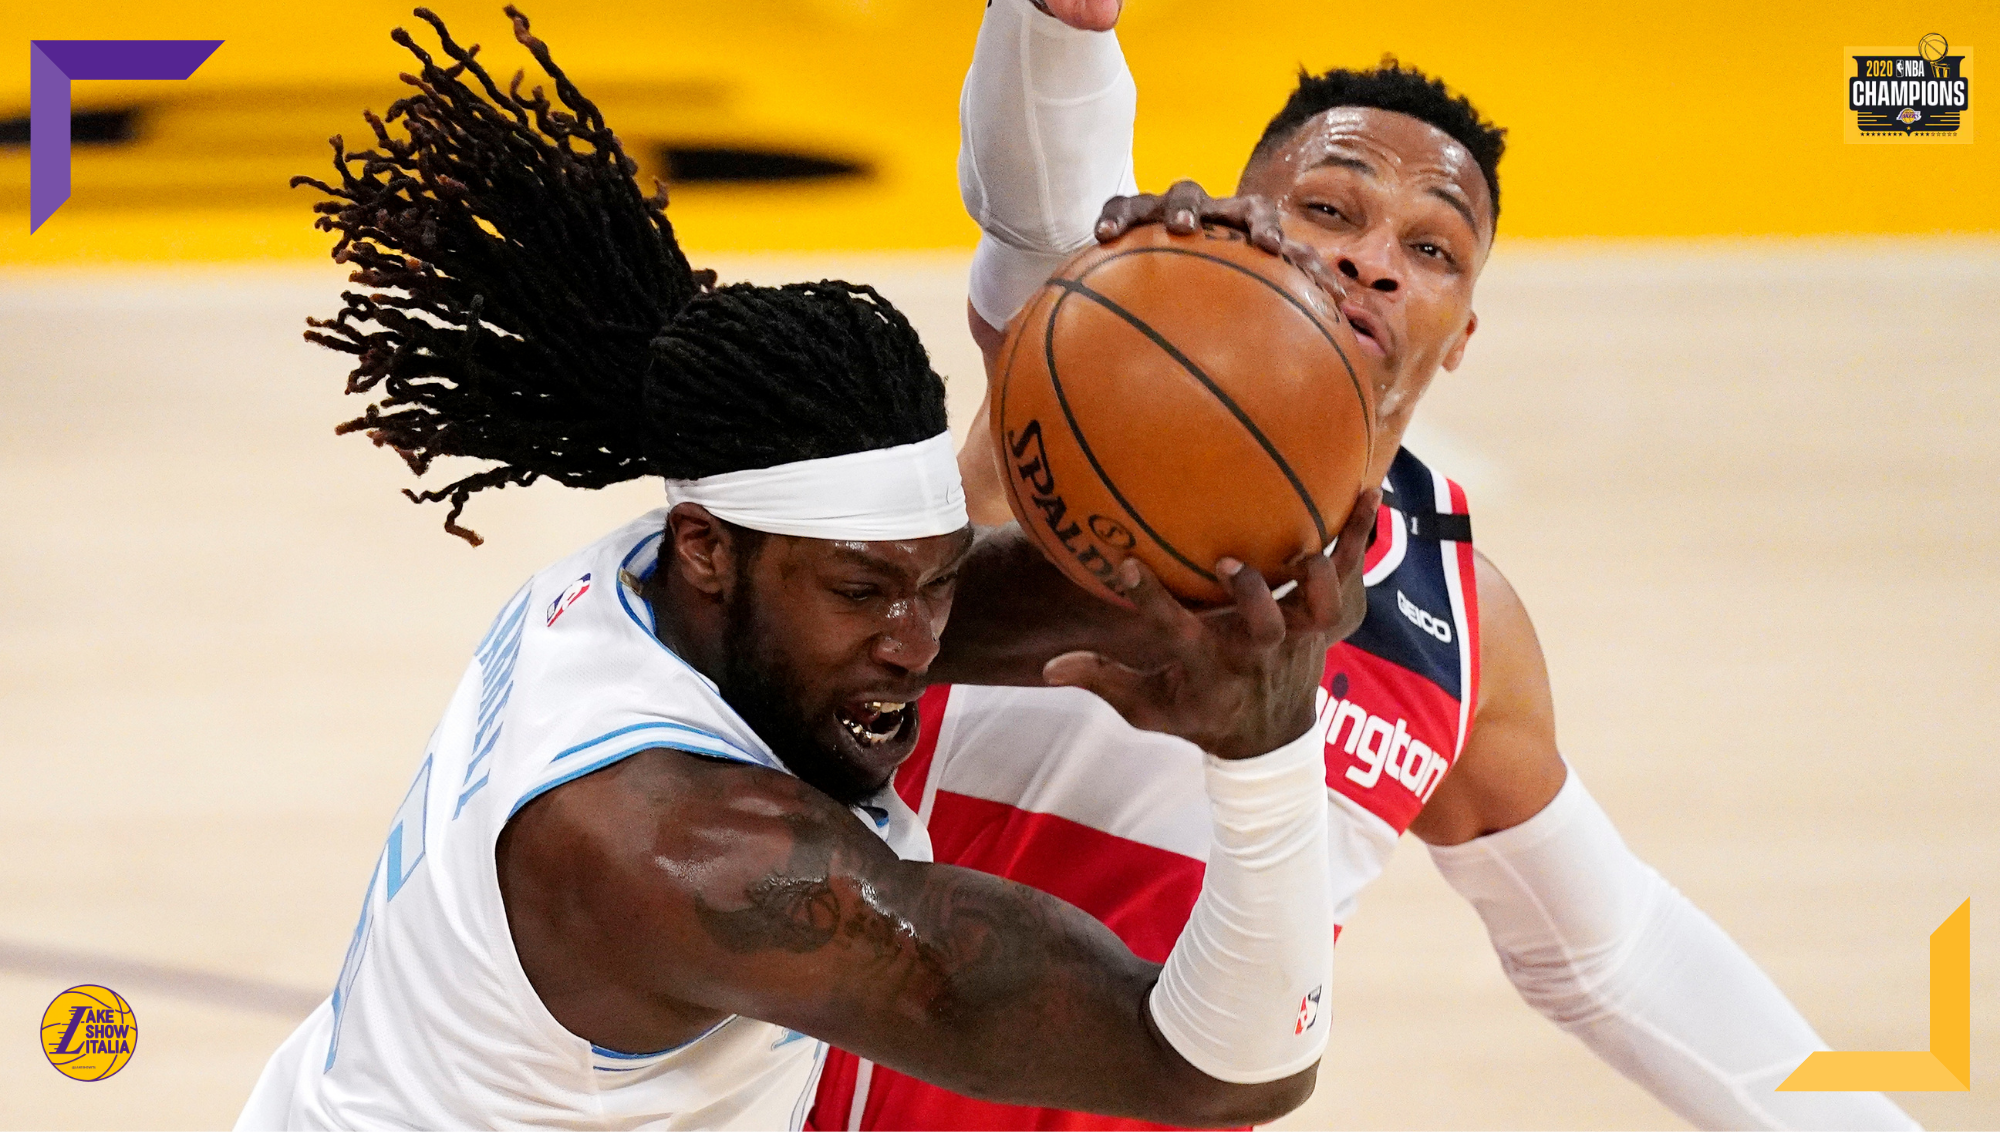 Montrezl Harrell and Russell Westbrook, Los Angeles Lakers vs Washington Wizards